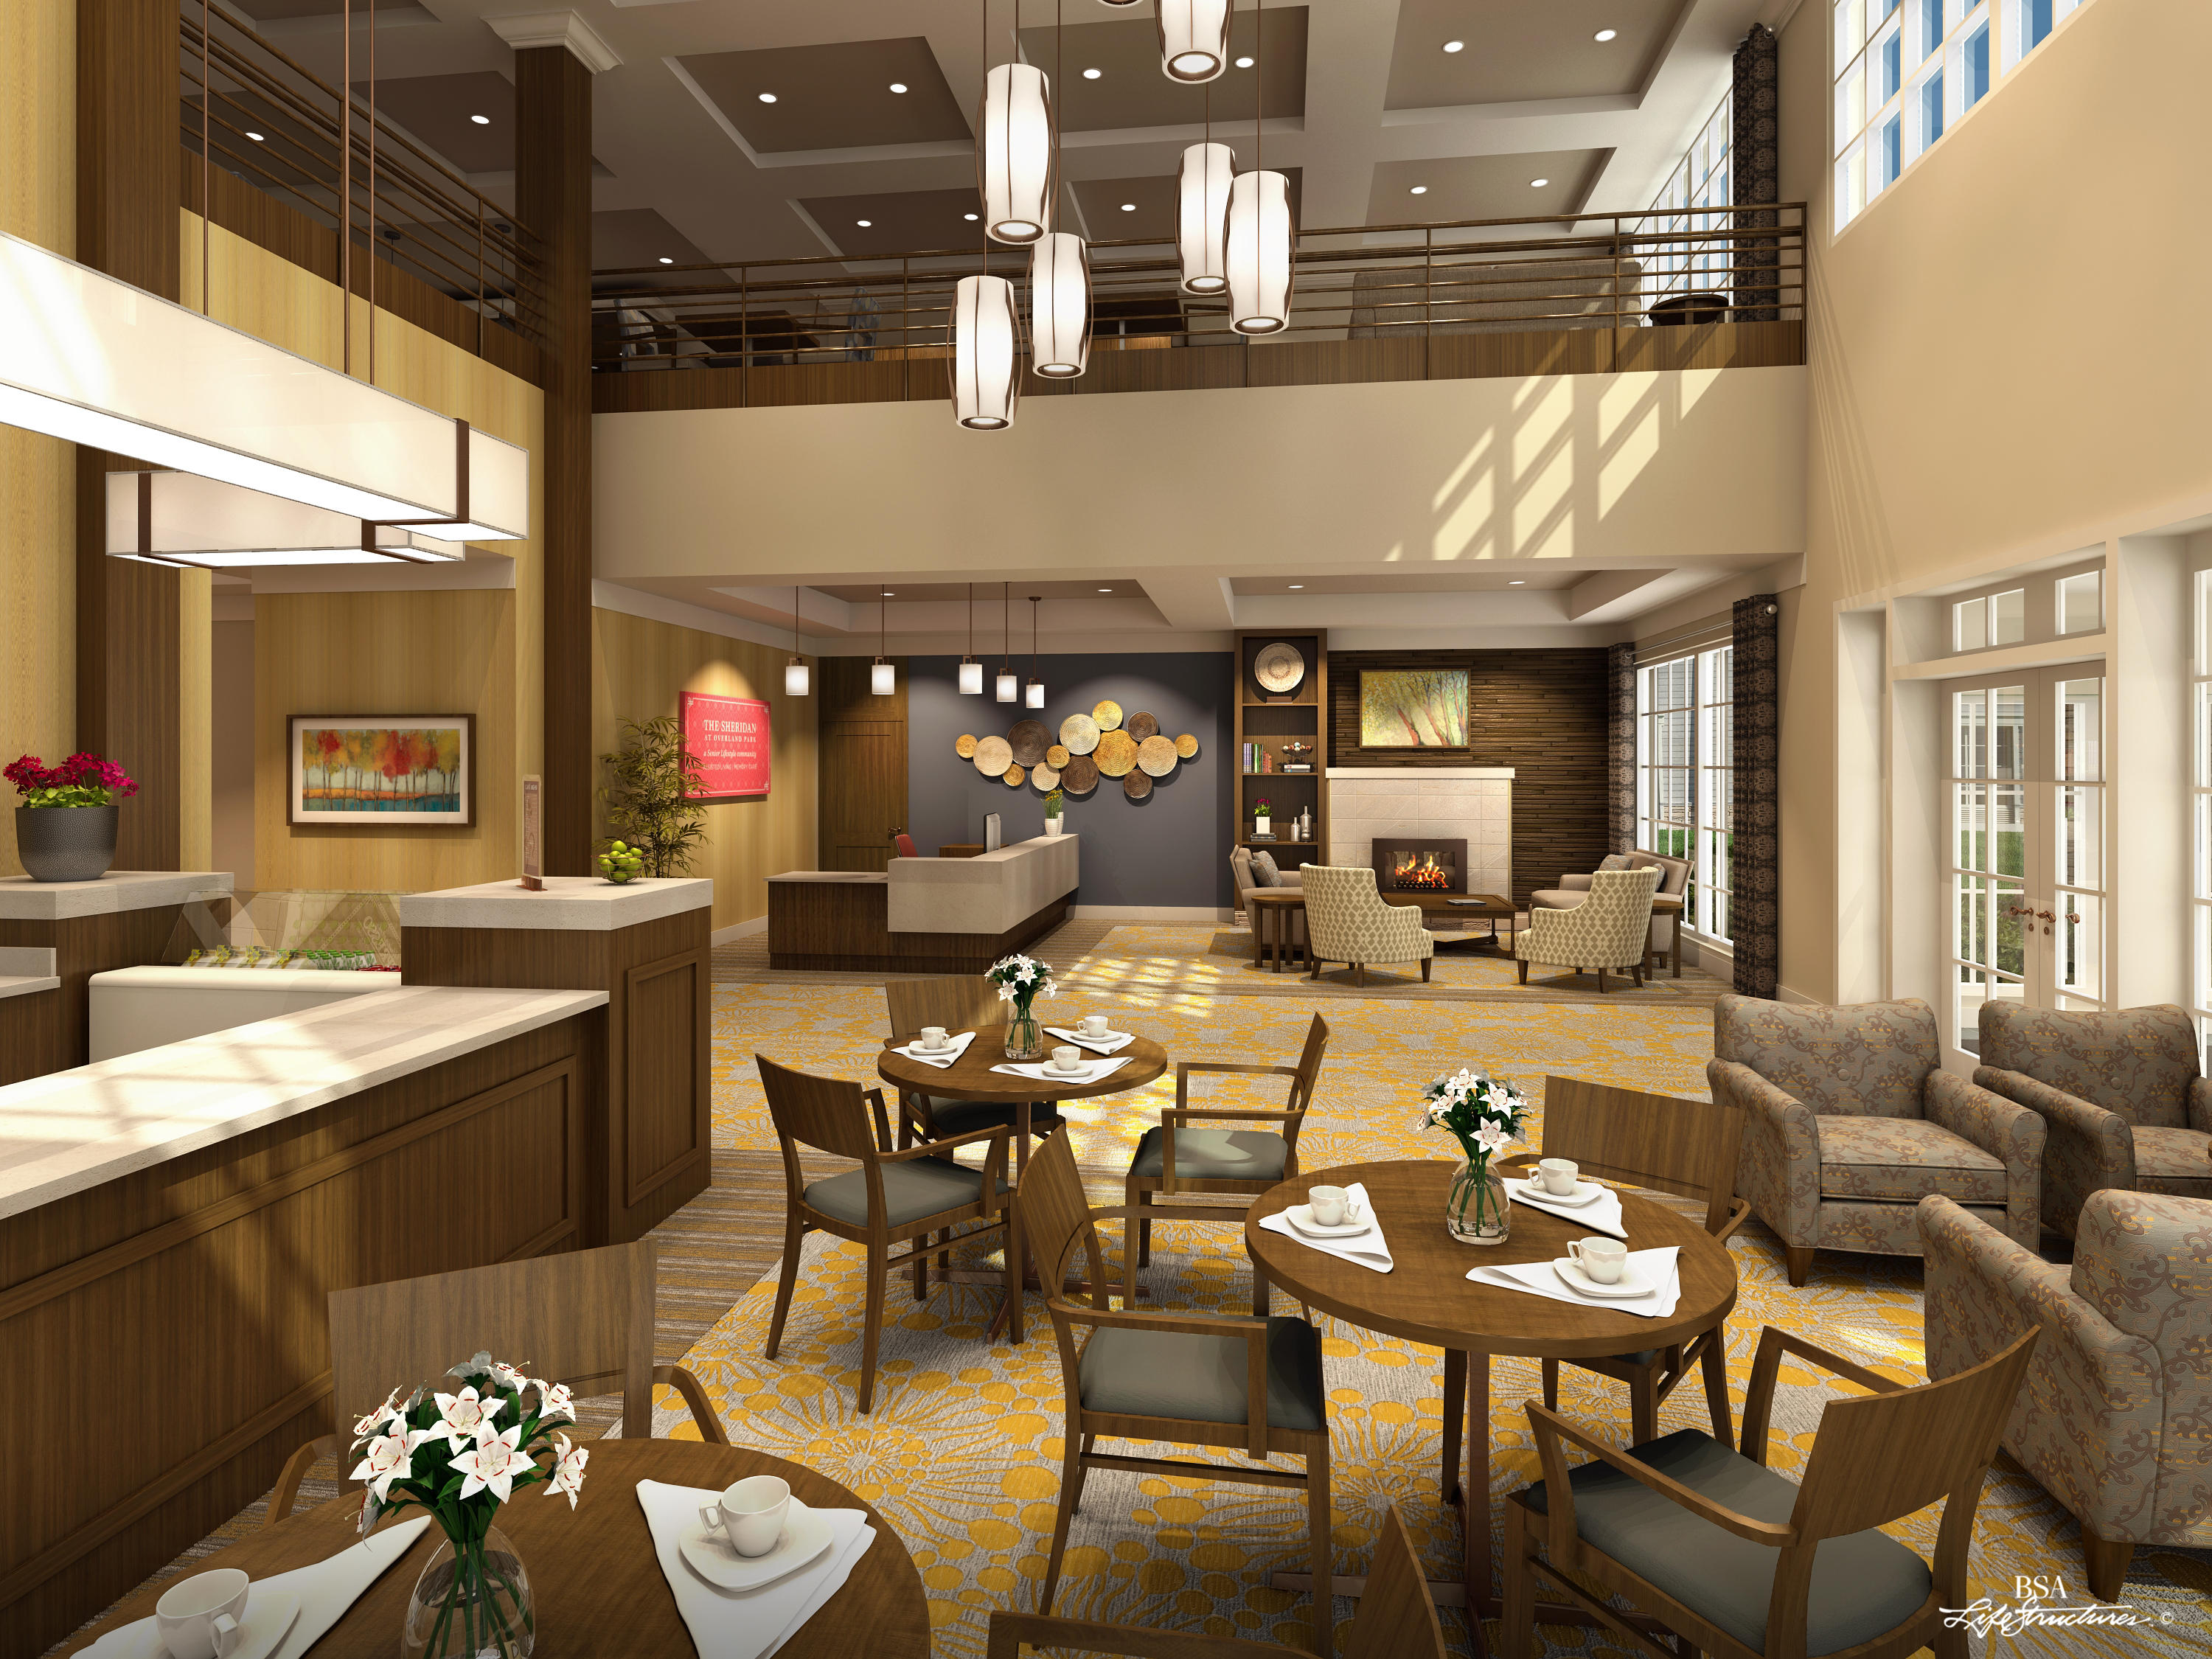 The Sheridan at Overland Park image 3